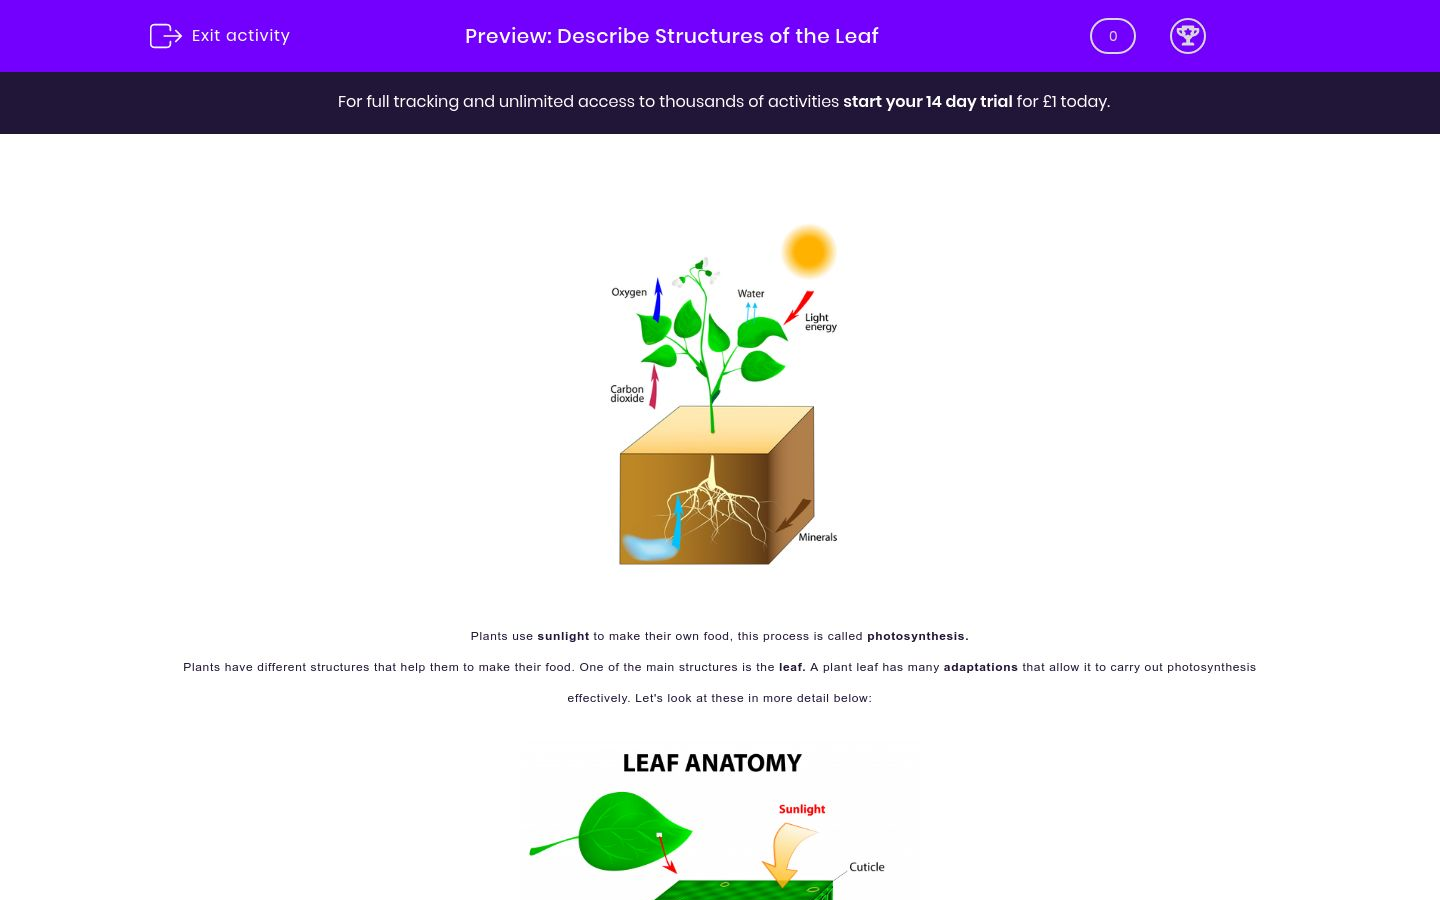 'Describe the Structures and Functions of the Leaf' worksheet